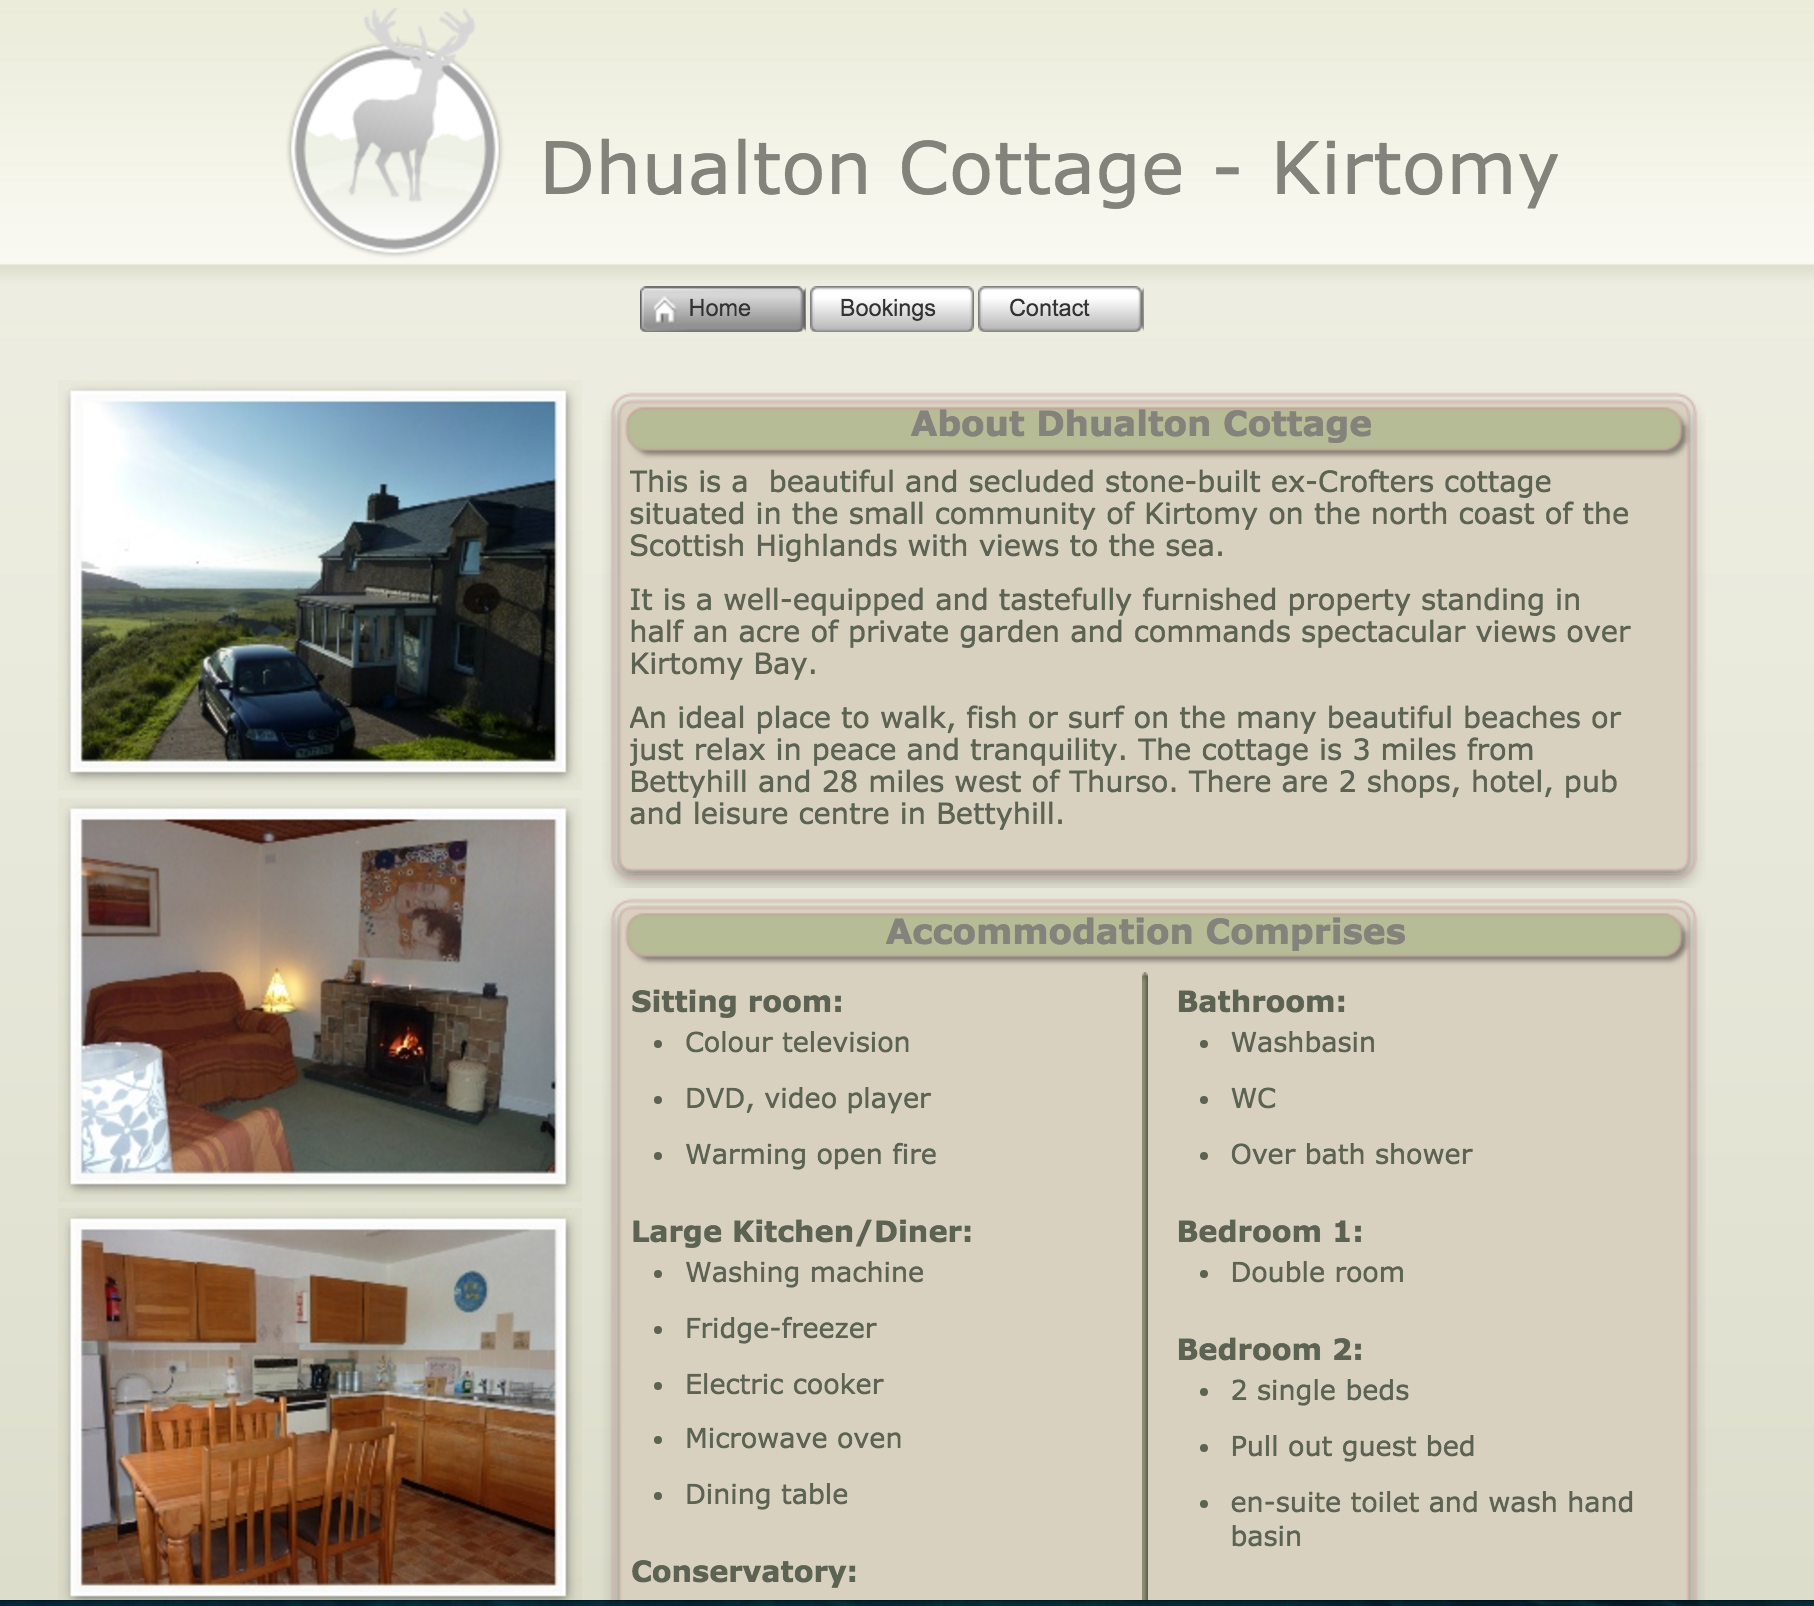 Dhualton Cottage - Kirtomy